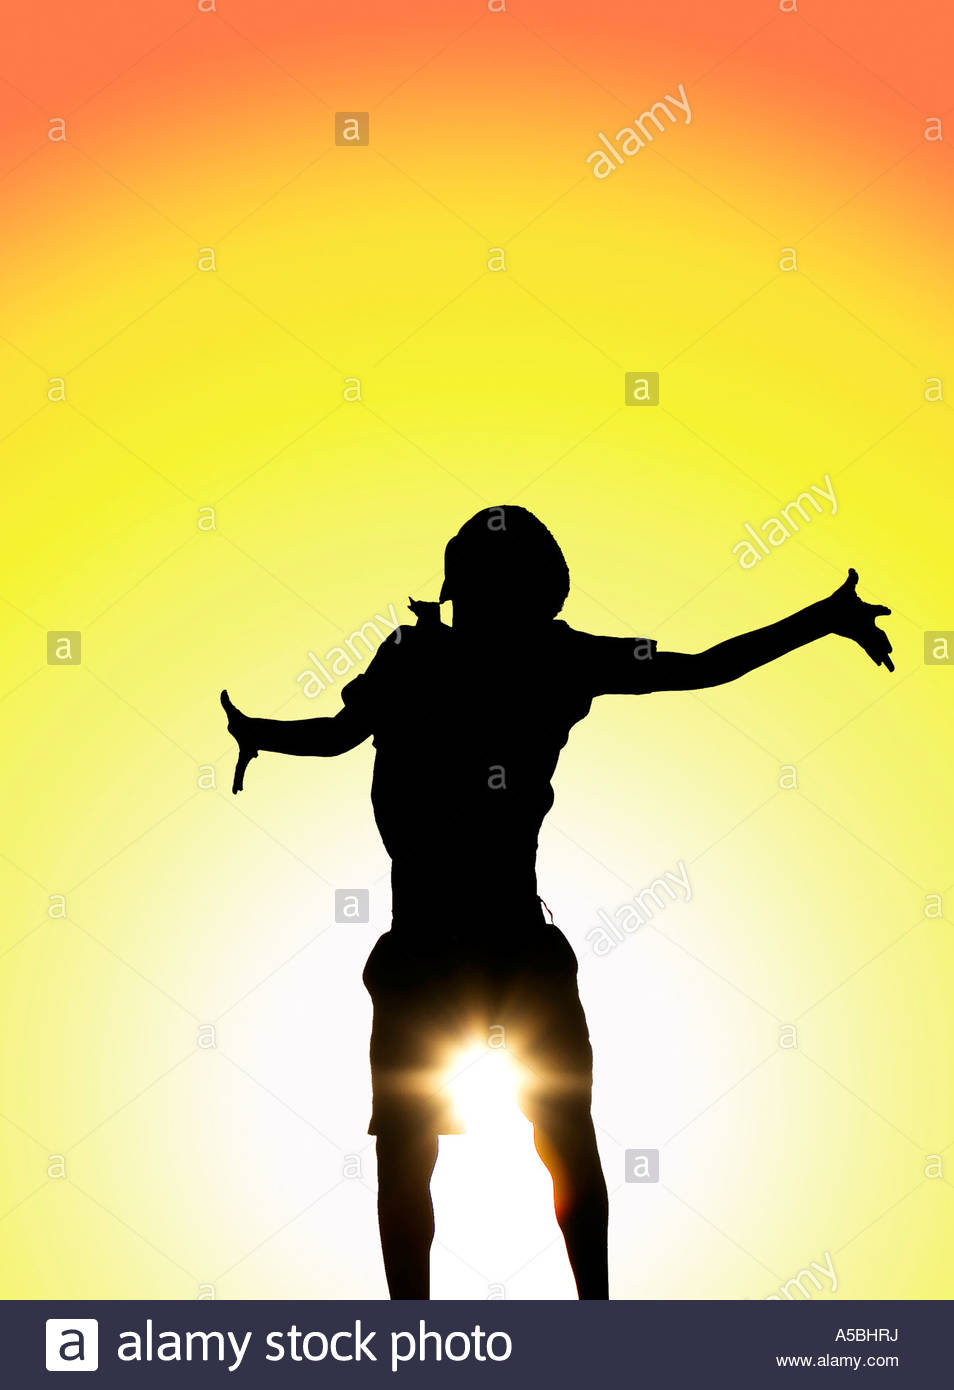 954x1390 Silhouette Indian Boy In Joyful Playful Mood Shot Against A Sunset